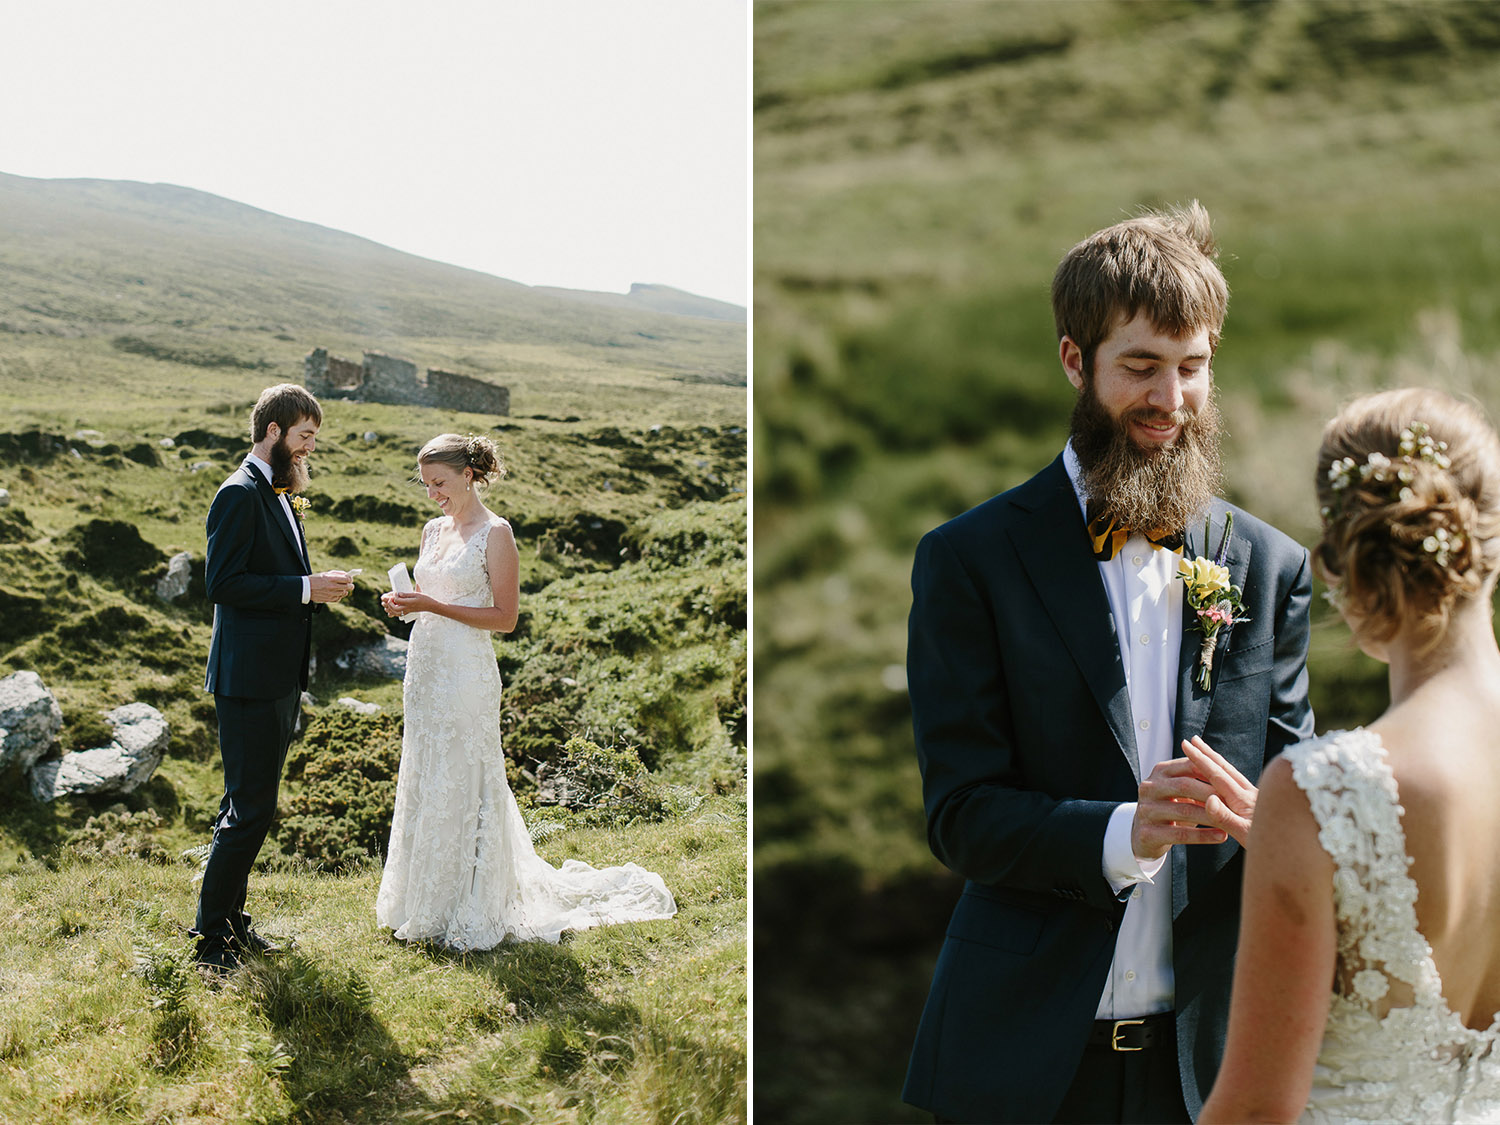 Achill-Island-Wedding-Photographer-301.jpg